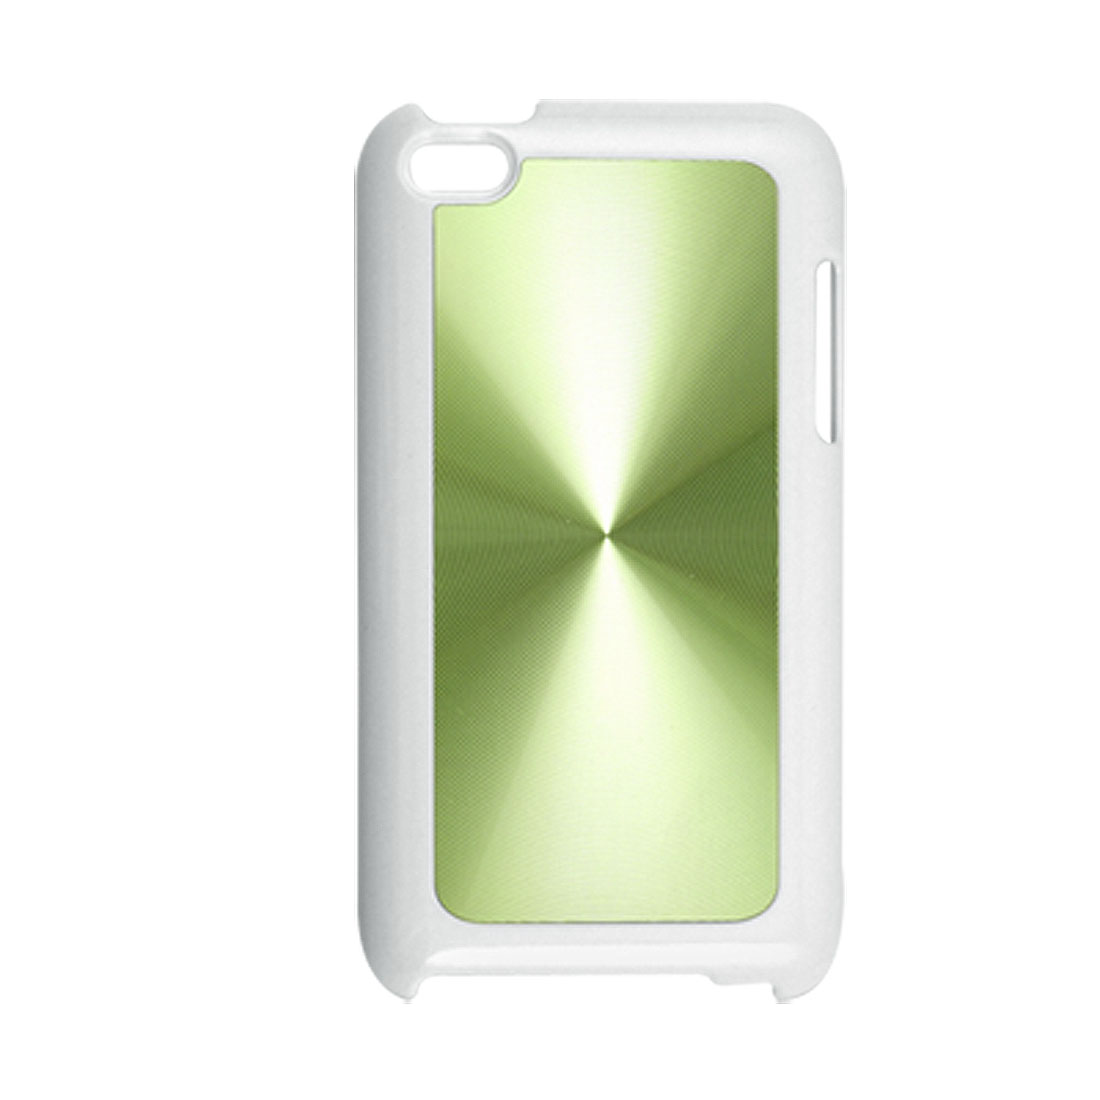 Green Fingerprint Textured Hard Plastic Cover for iPod Touch 4G